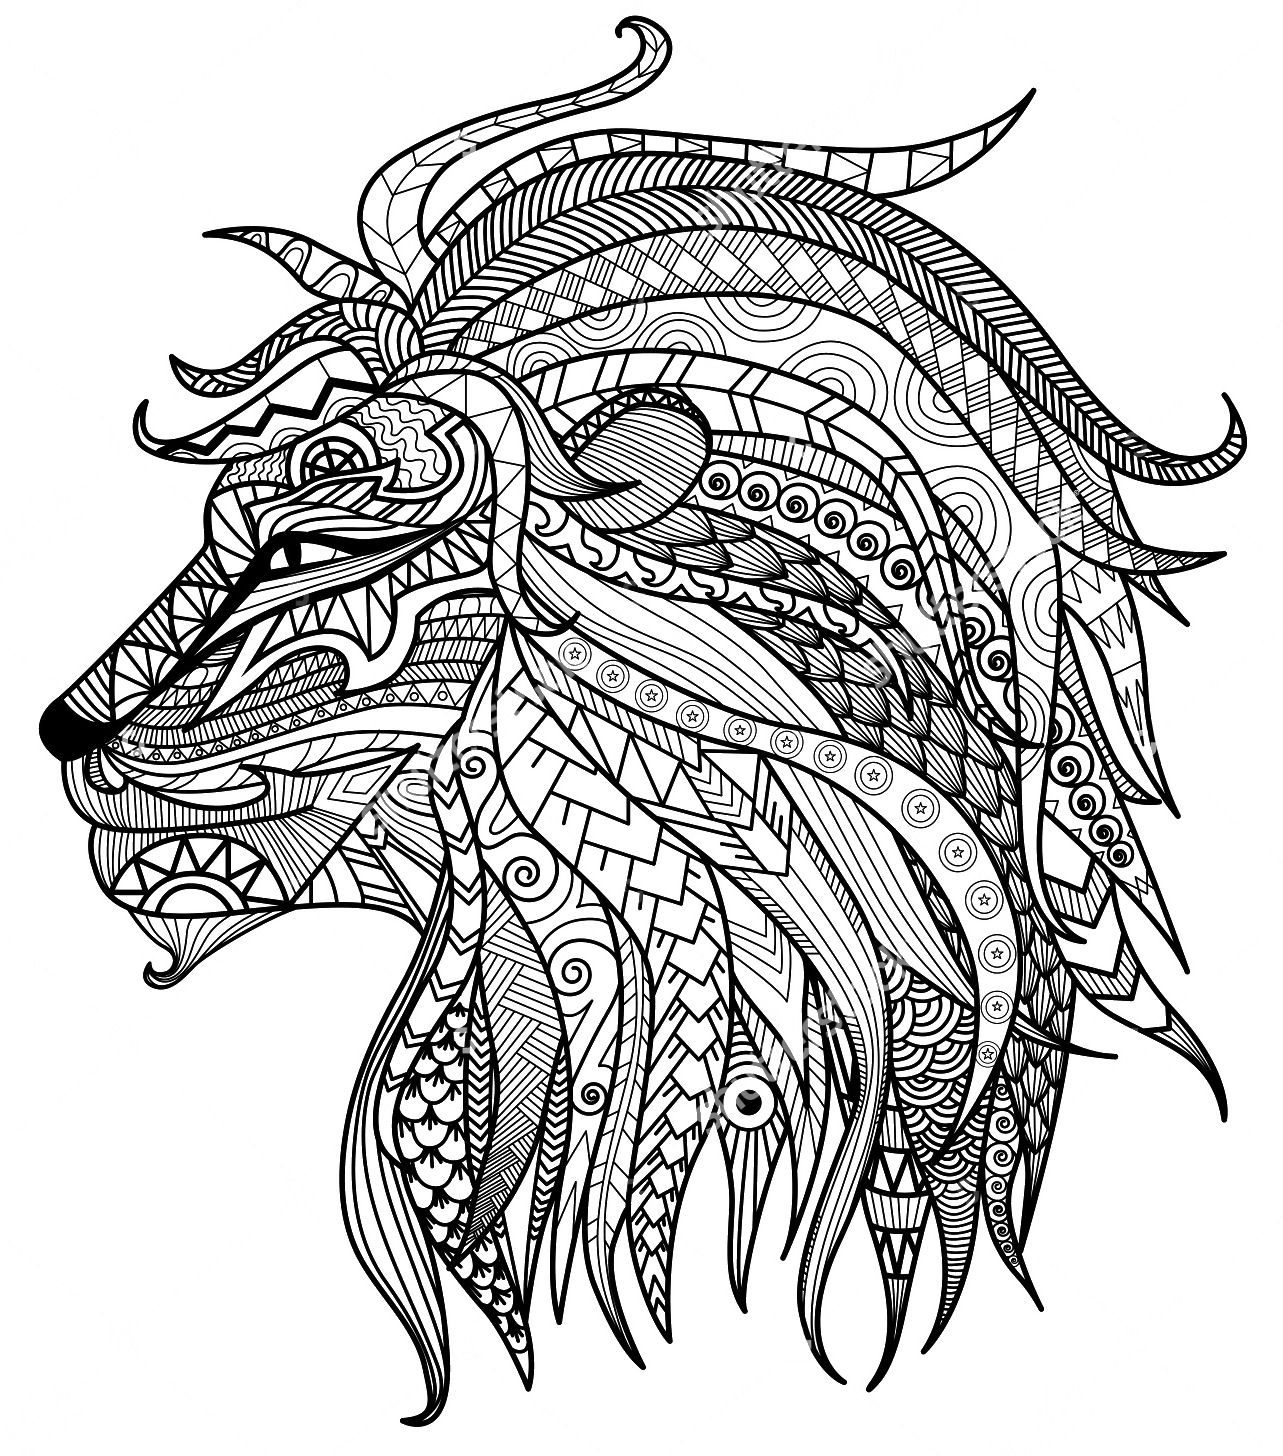 coloring pages lion Adult Coloring Pages Lion Head | Adult Coloring Pages and  coloring pages lion